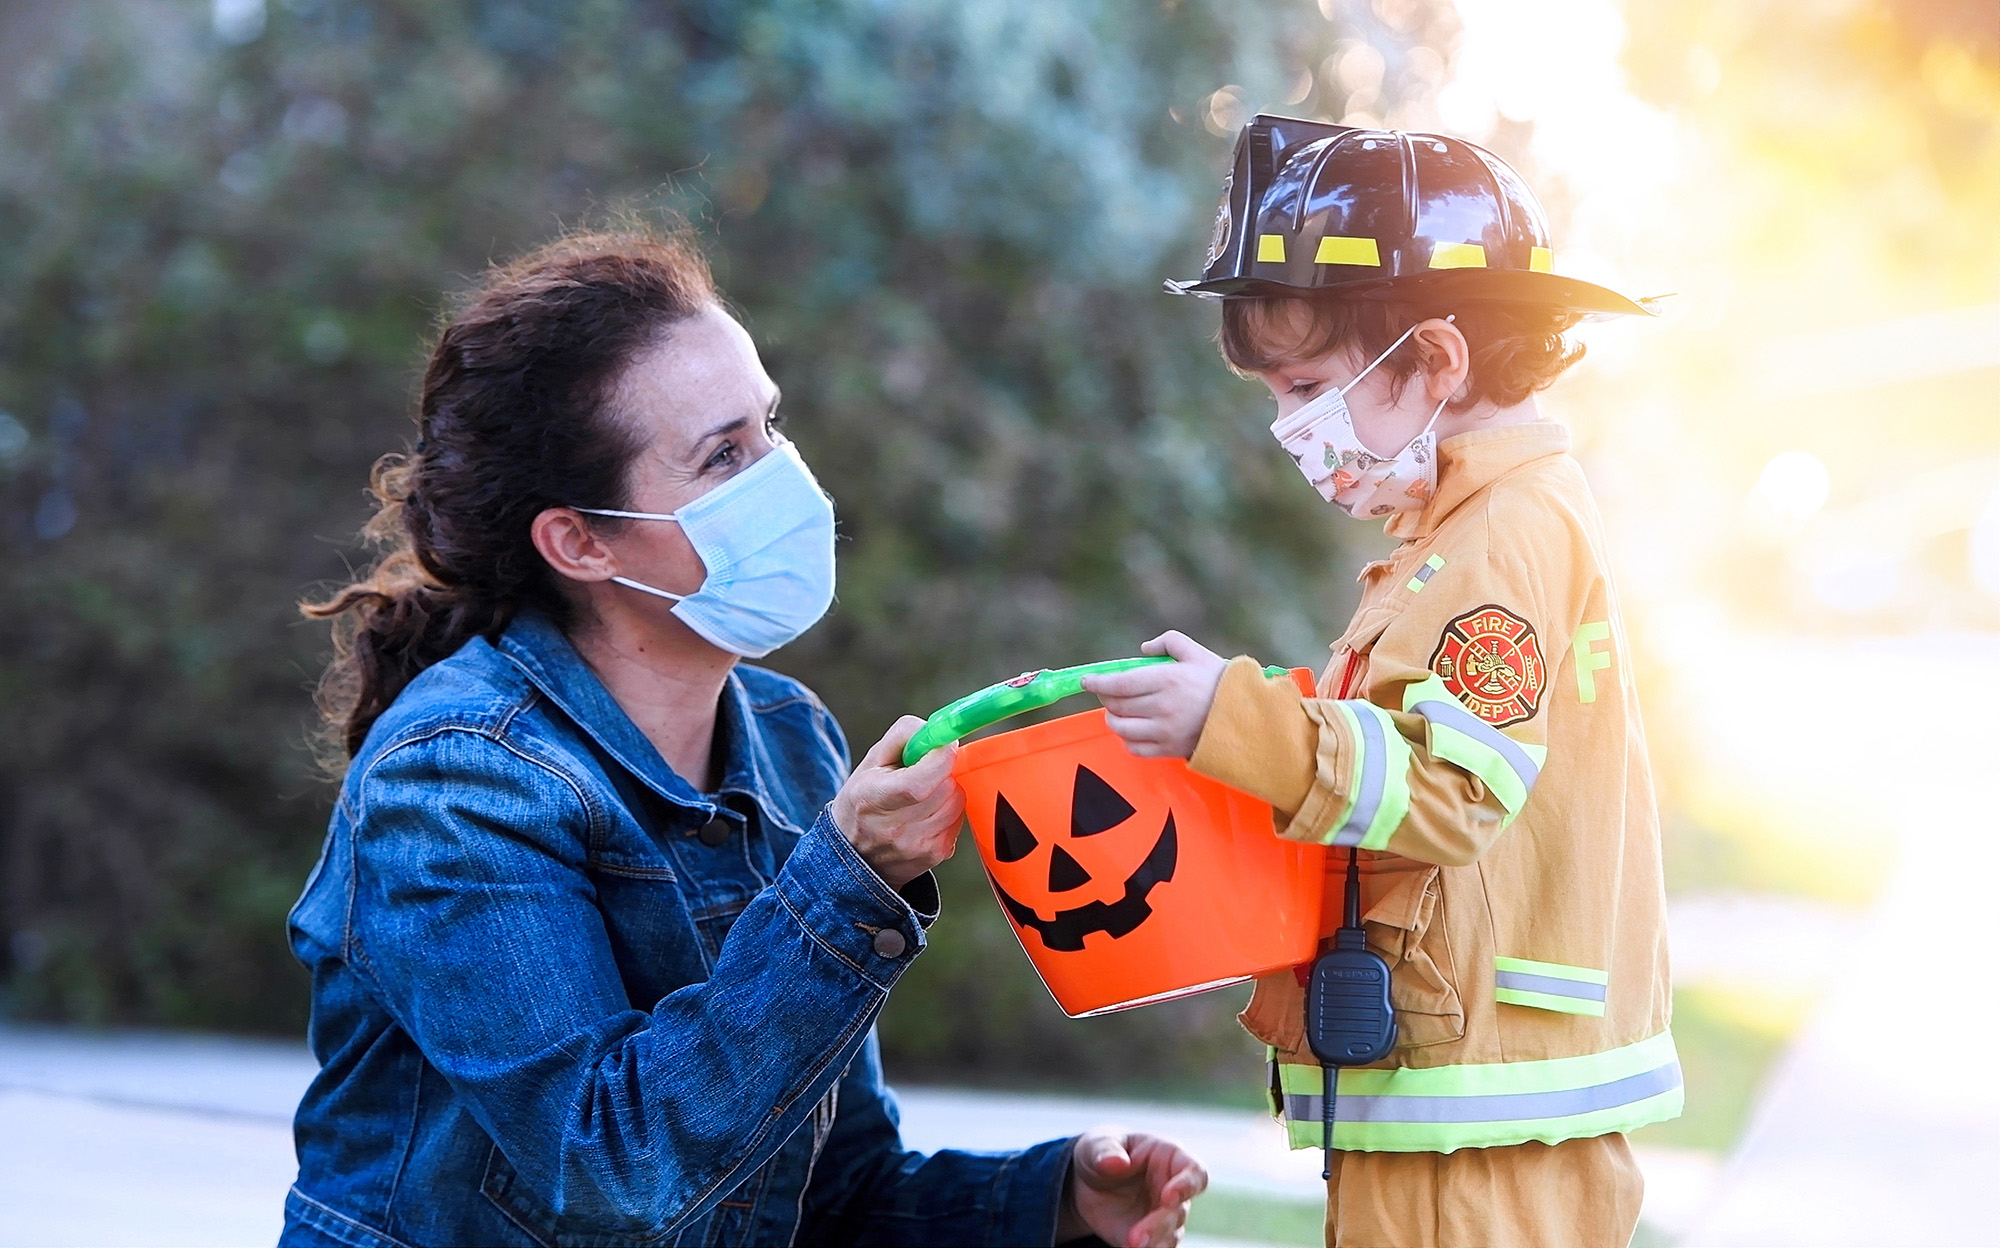 Woman and child wearing face masks; child is wearing a firefighter costume and holding a plastic bucket while preparing to go trick-or-treating